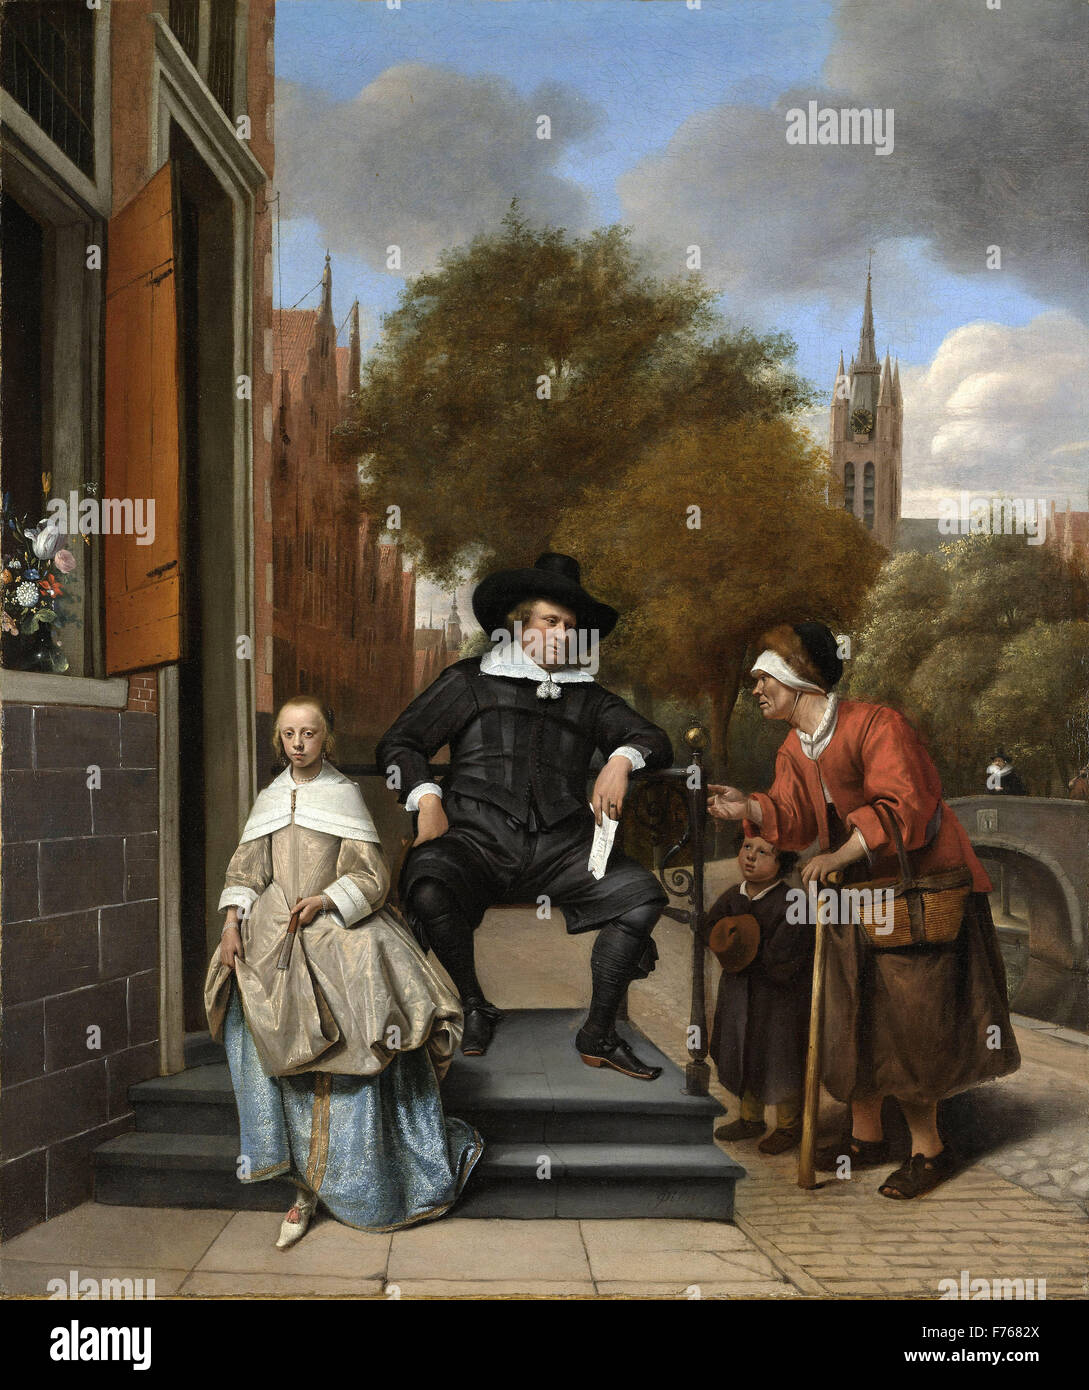 Jan Steen - Adolf and Catharina Croeser, Known as 'The Burgomaster of Delft and his Daughter' Stock Photo